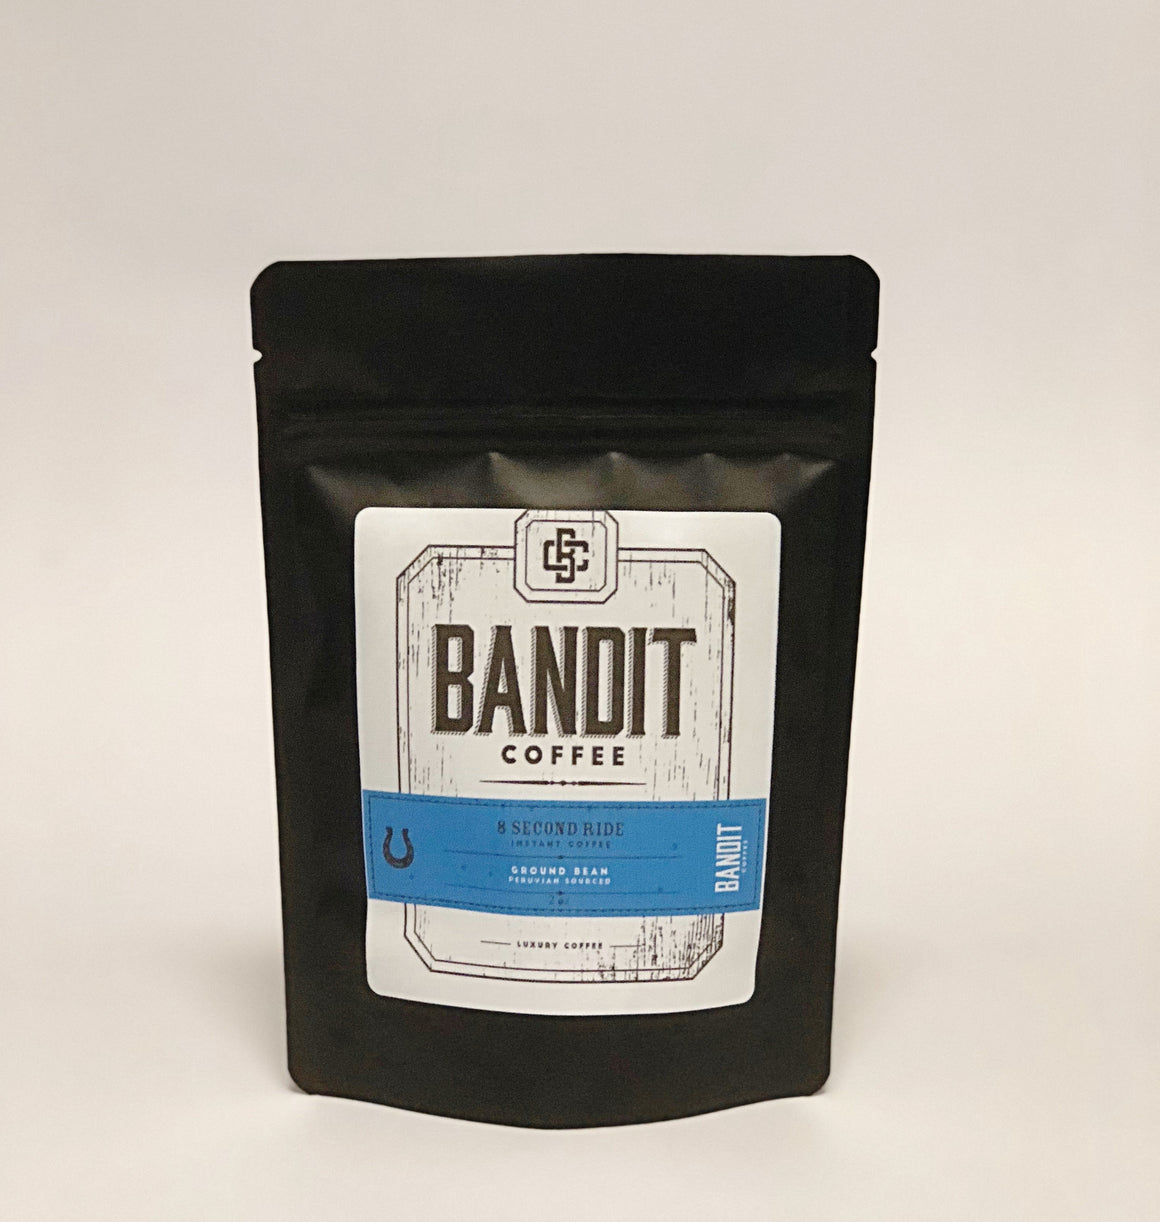 8 Second Ride Instant Coffee   2 oz. - Bandit Coffee Co. Coffee - low acidity coffee, Coffee - subscription coffee, 8 Second Ride Instant Coffee   2 oz. - luxury coffee, Coffee - on-demand coffee, Coffee - instant coffee,